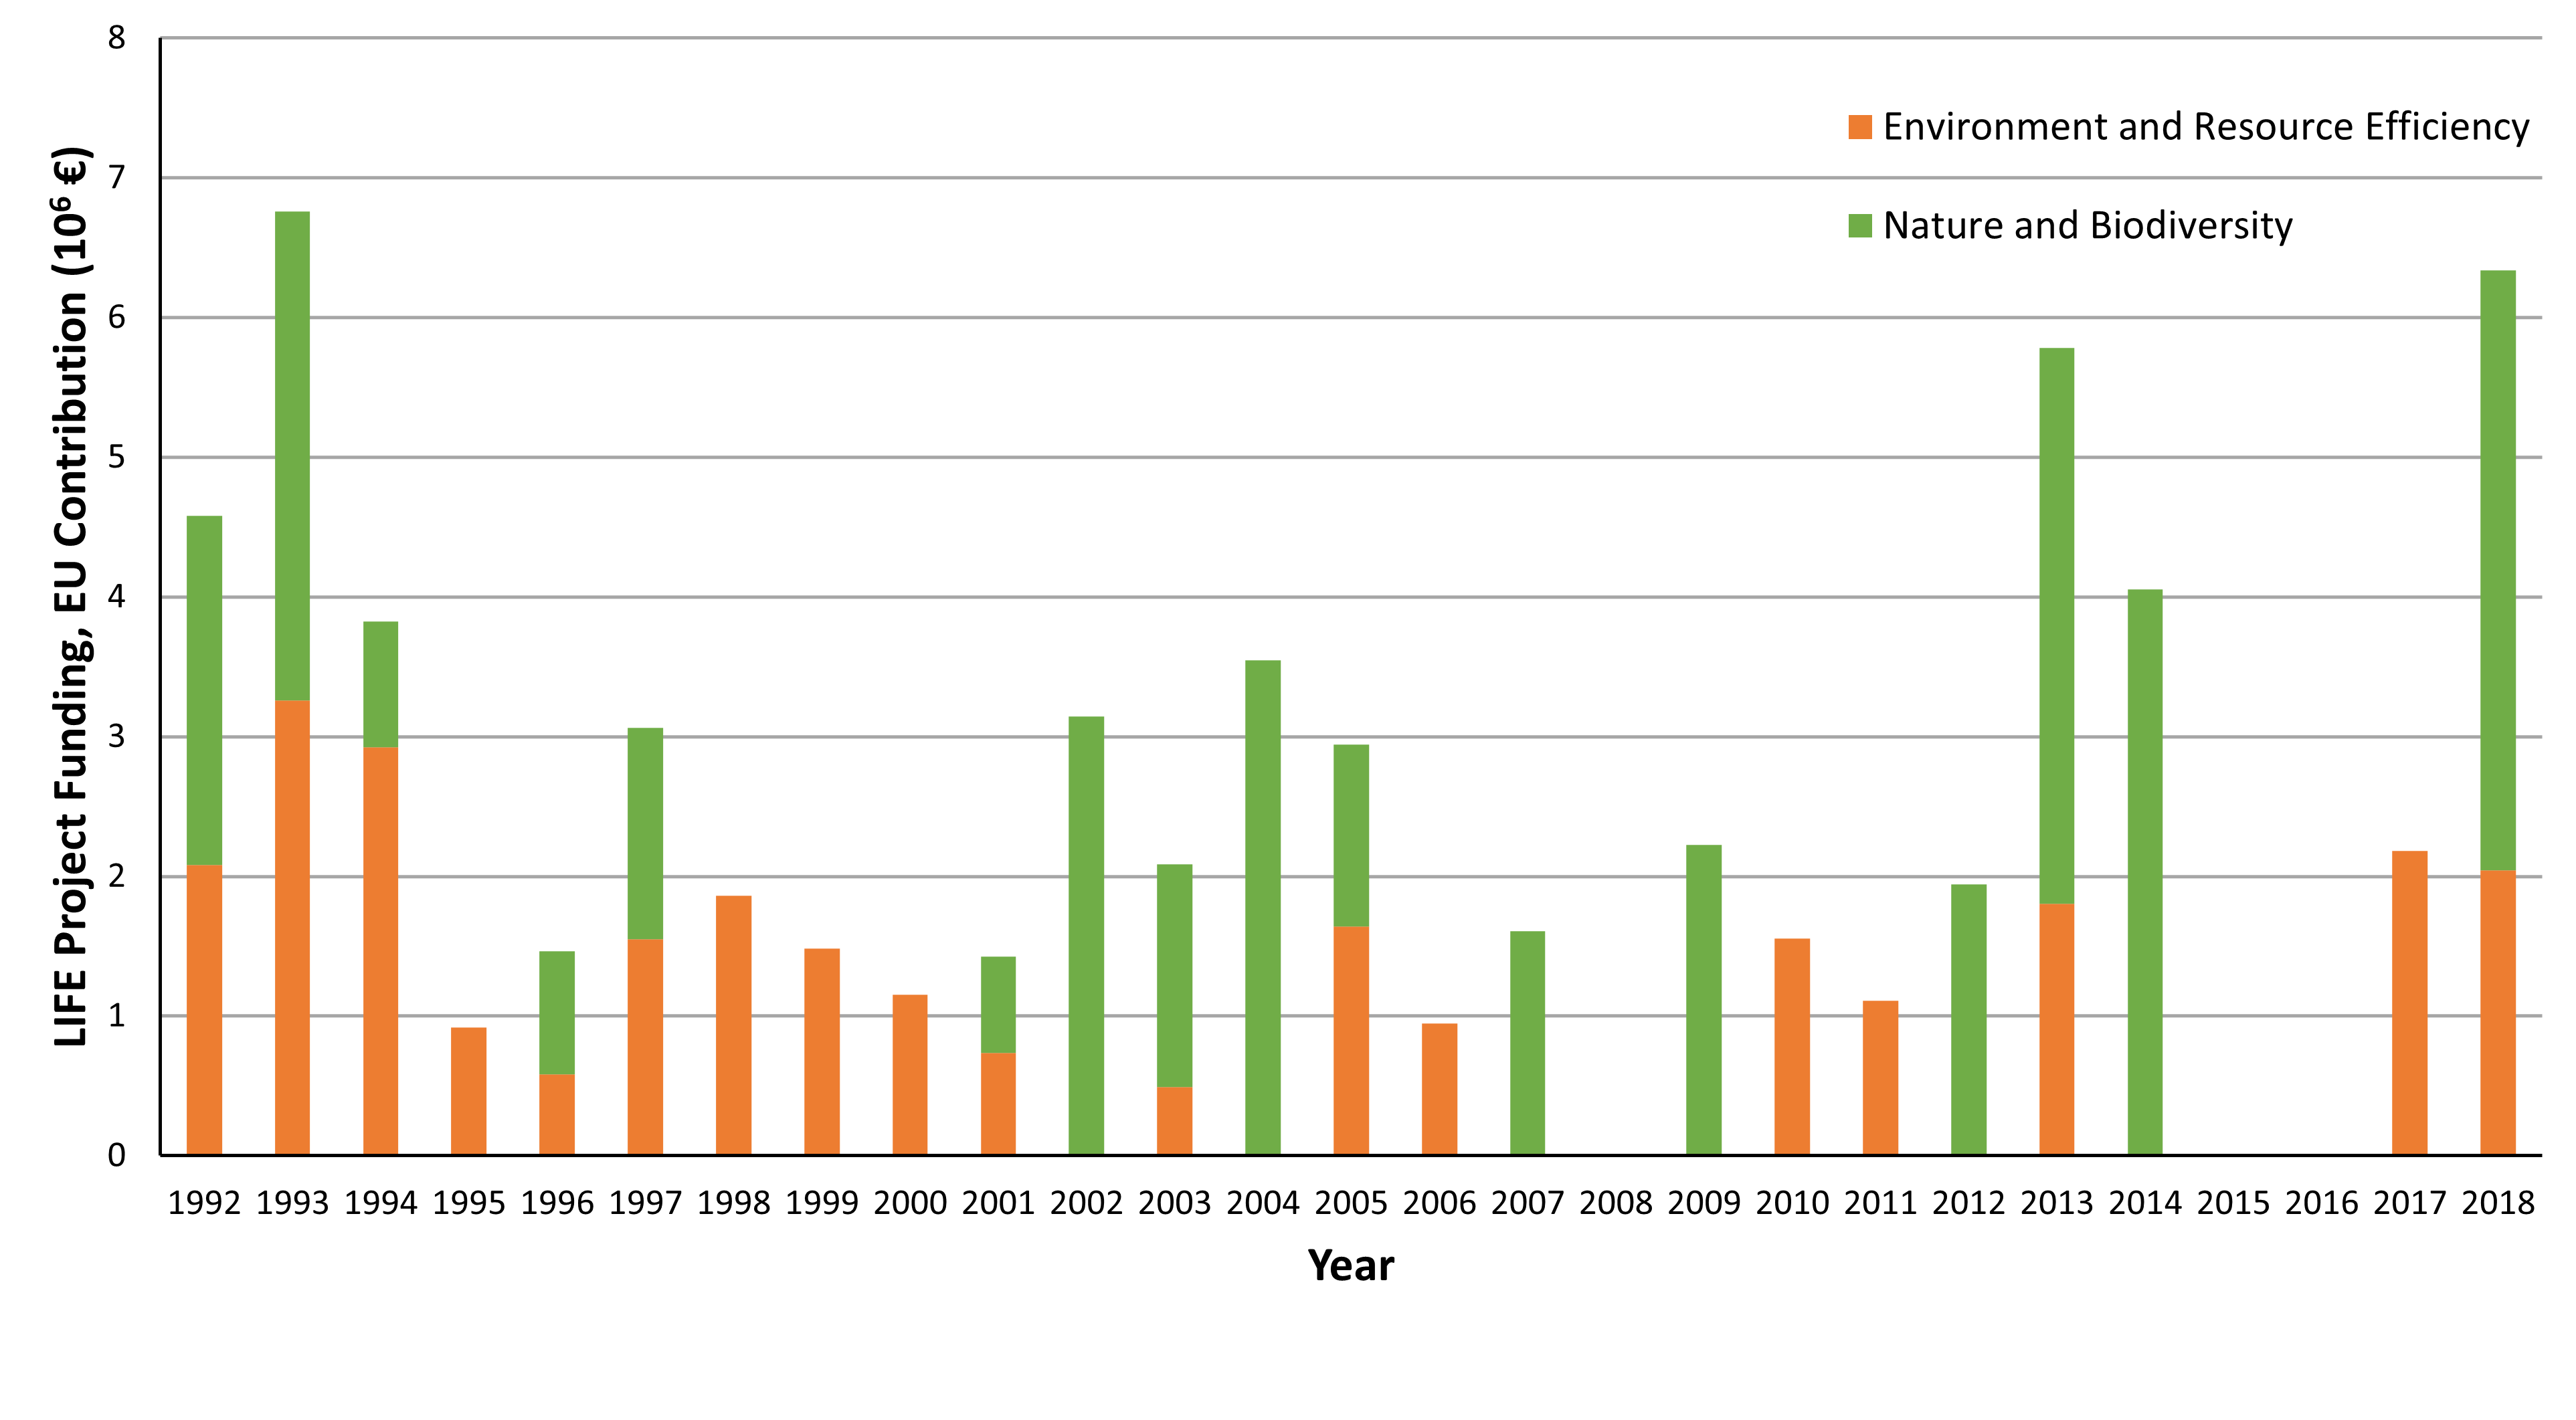 Chart D.4.ii. Amount of funding for biodiversity leveraged from EU LIFE Programme